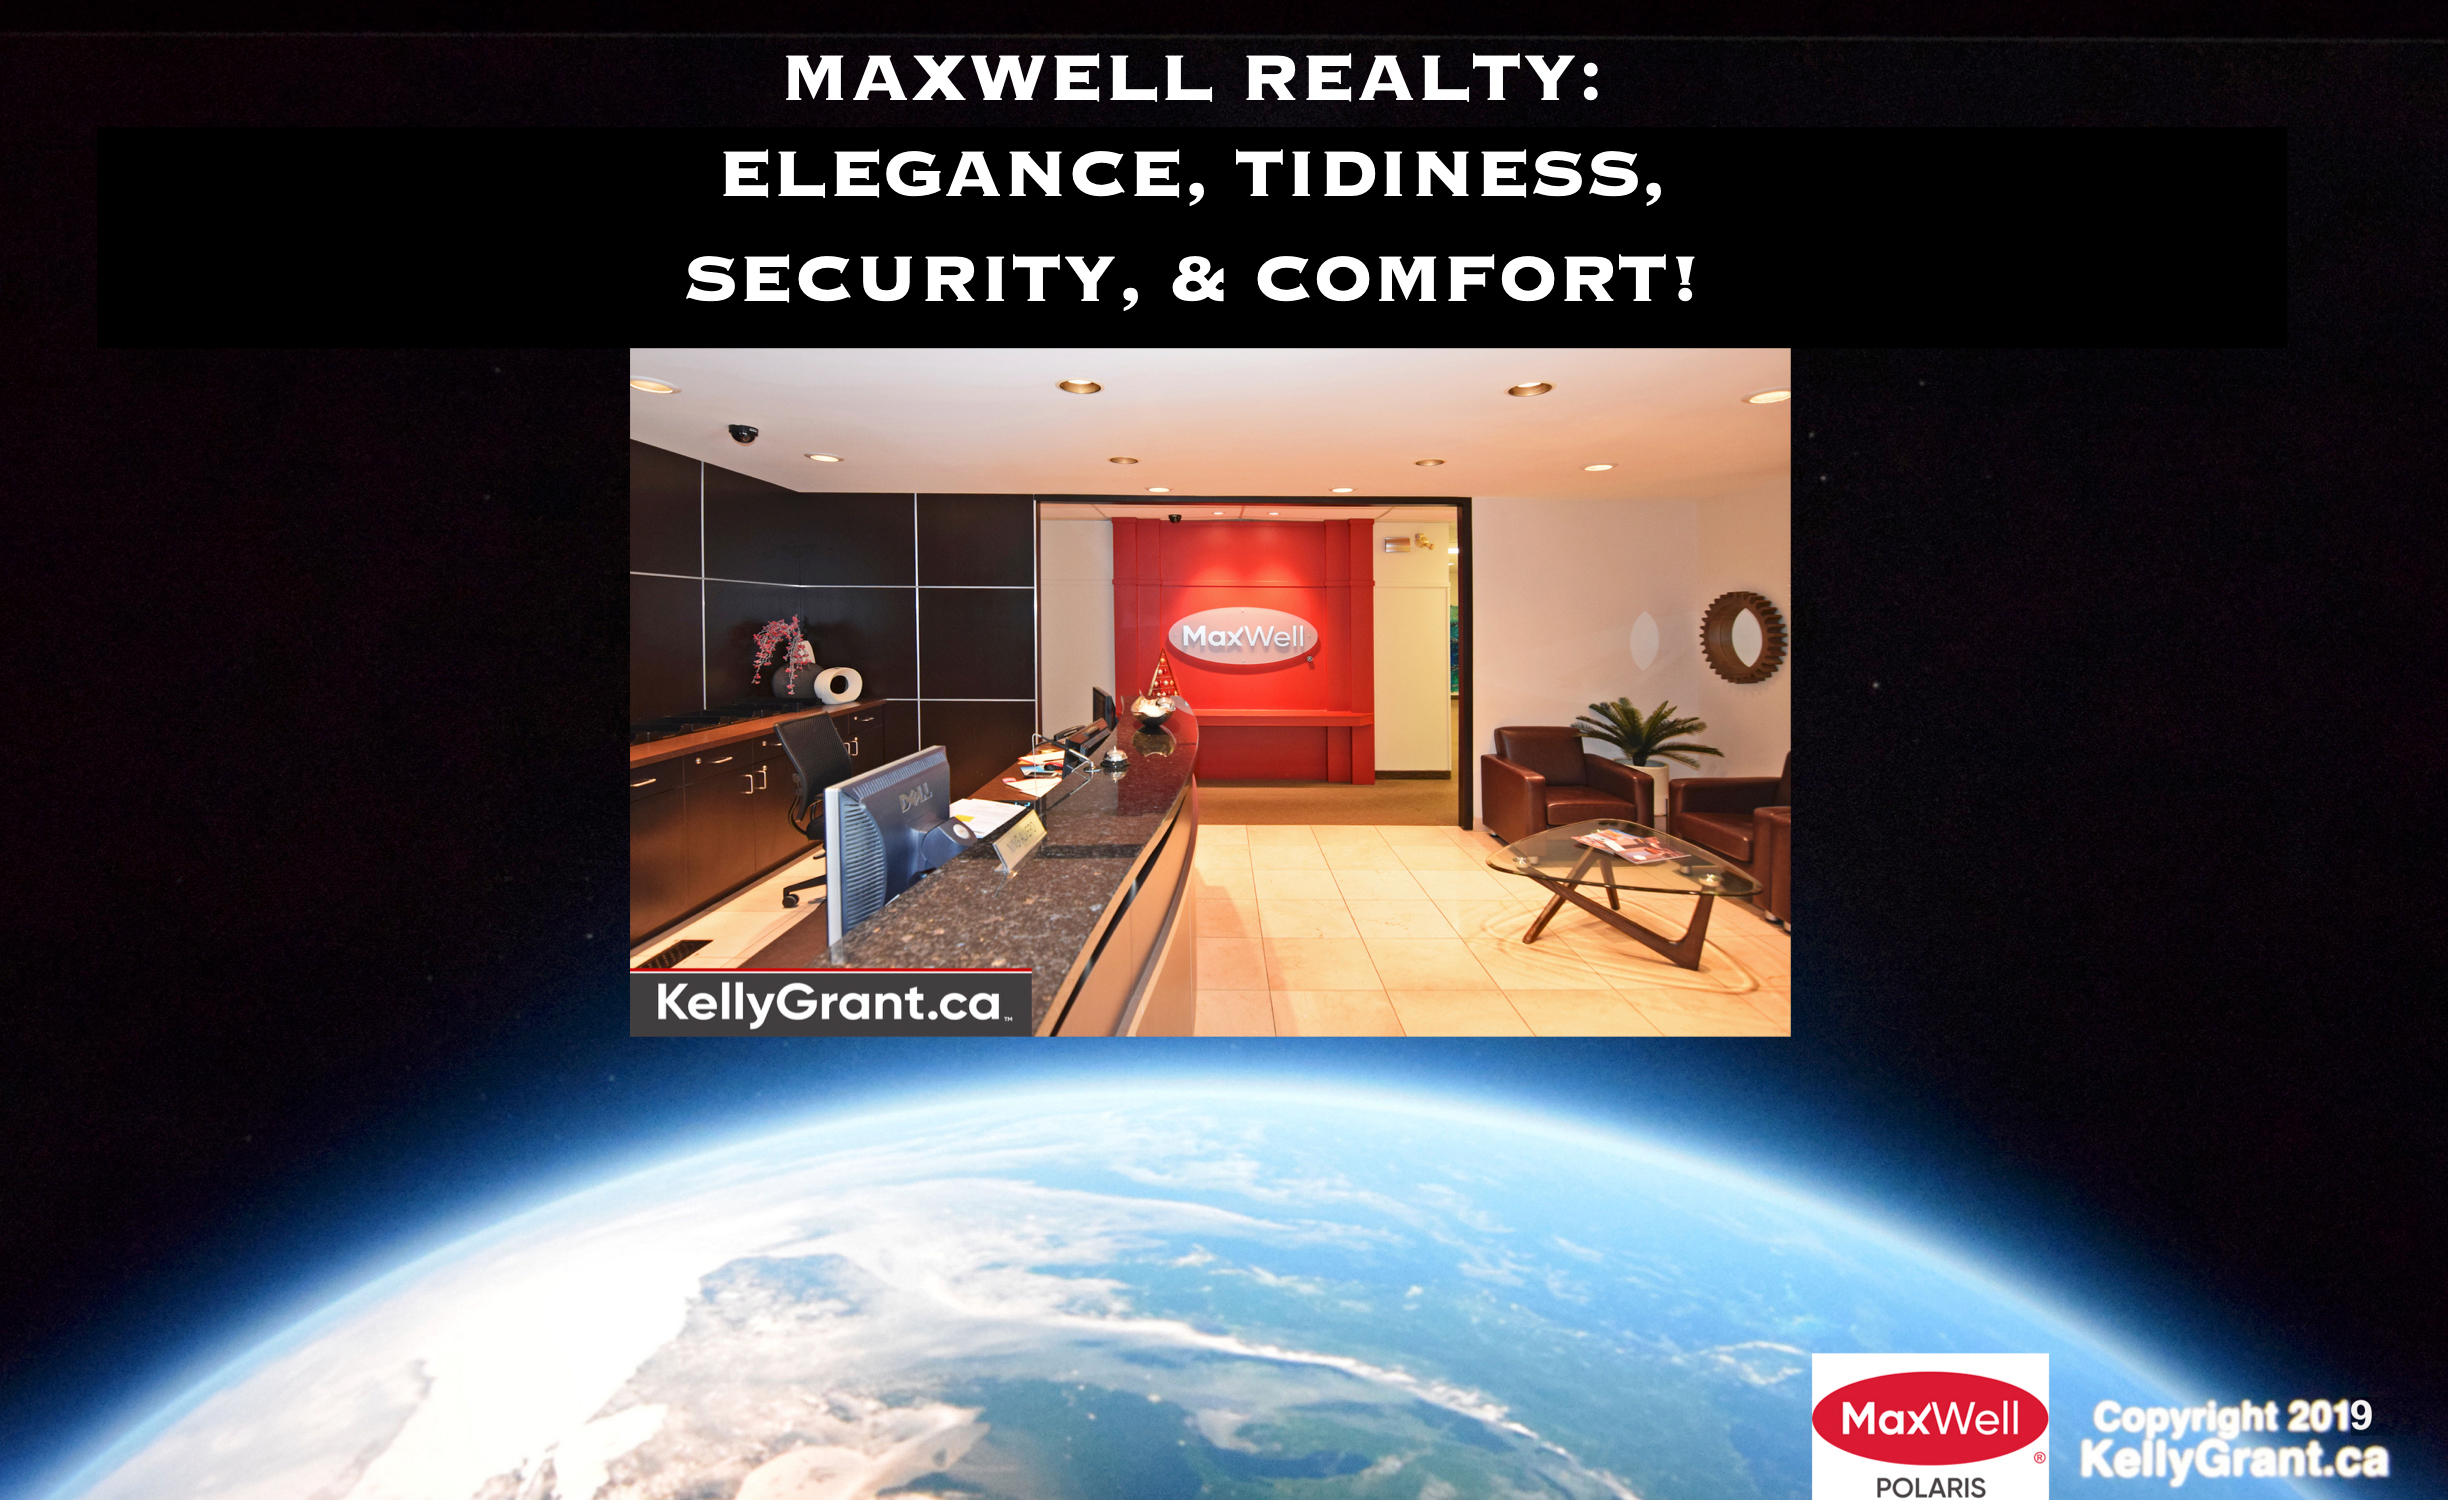 MaxWell Realty: Elegance Tidiness Security and Comfort